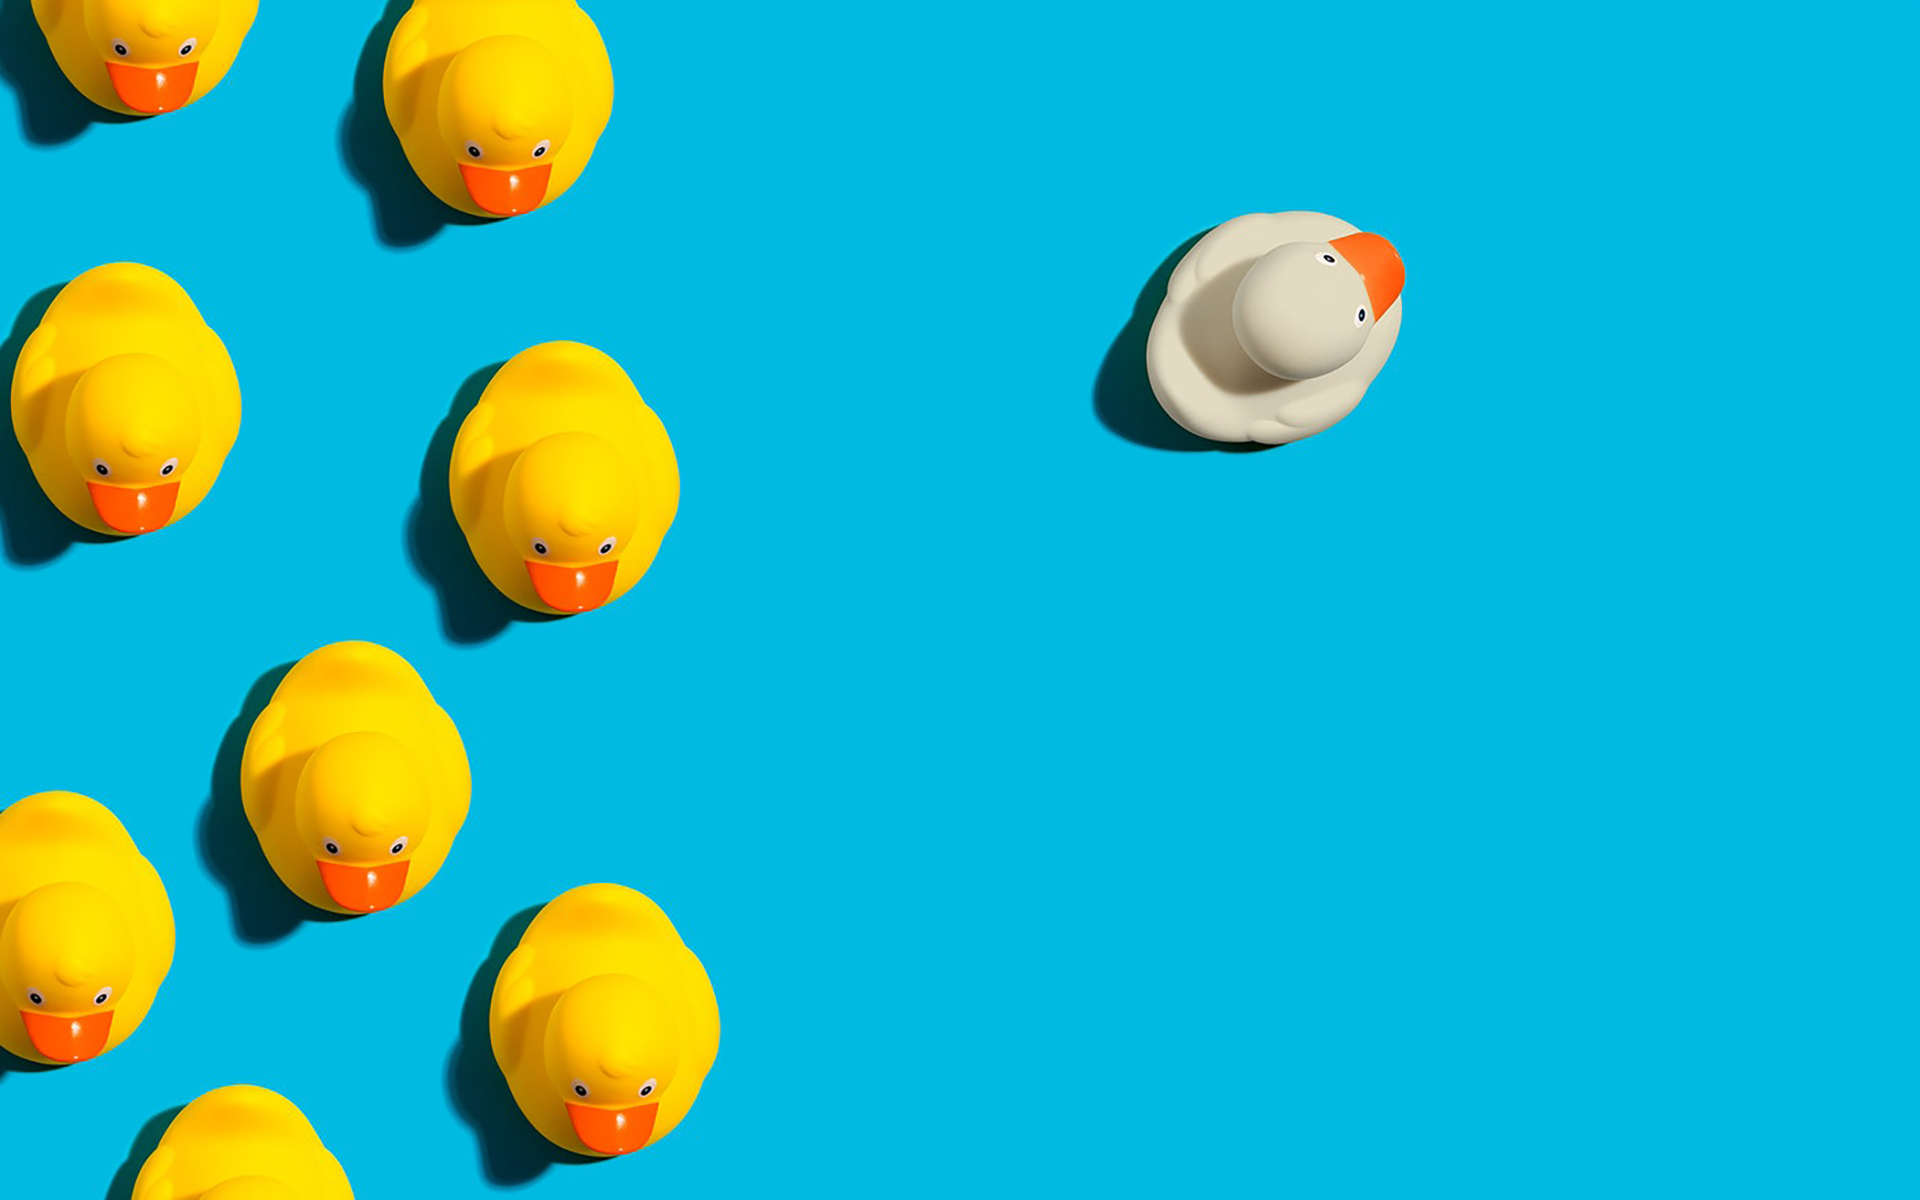 On a blue background, a group of yellow rubber ducks are on the left and on the right there is one white duck facing toward the outside of the frame.